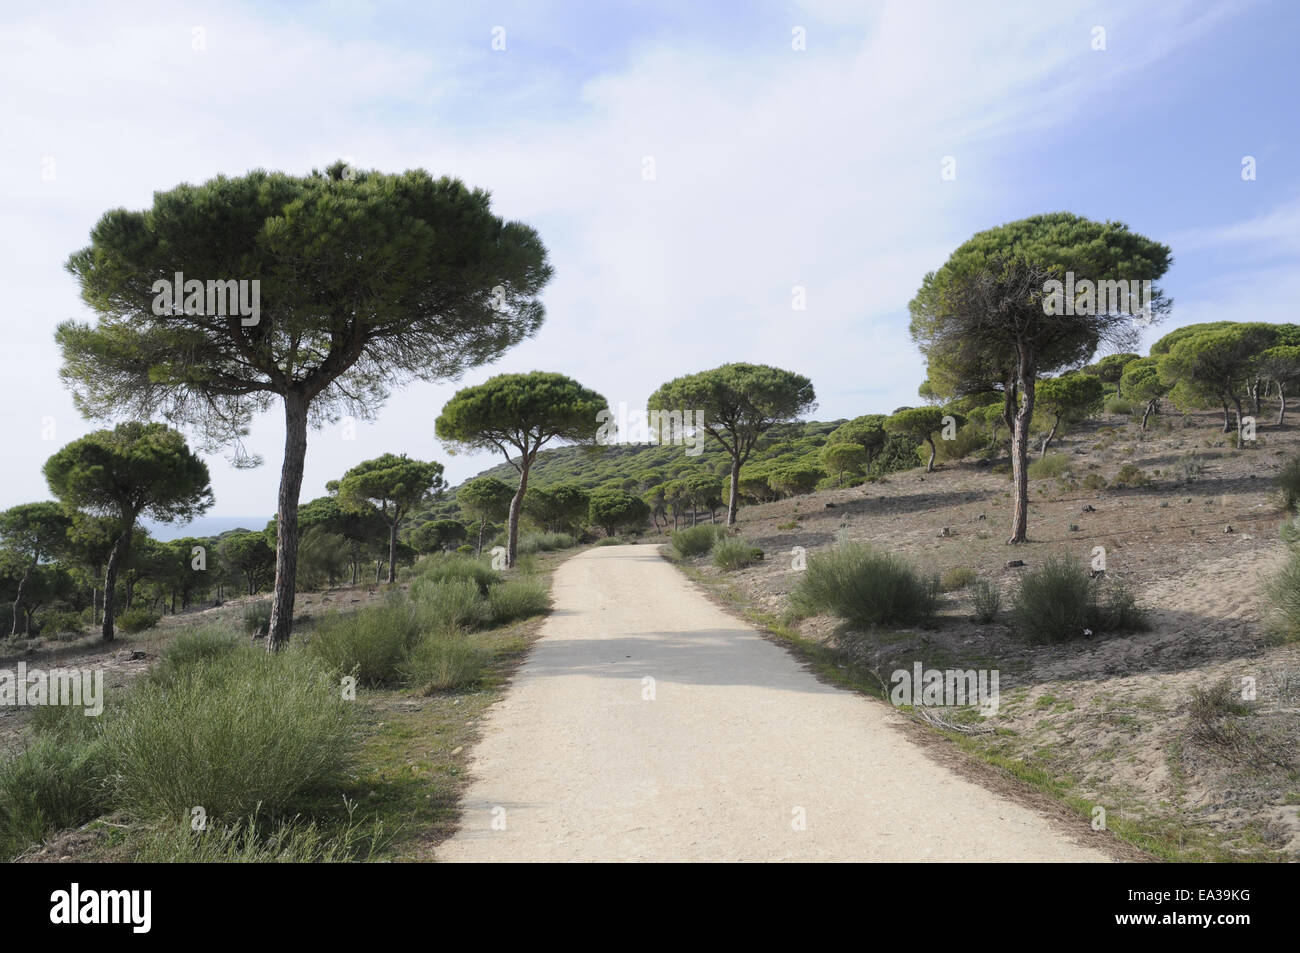 Pine forest, Barbate, Spain Stock Photo